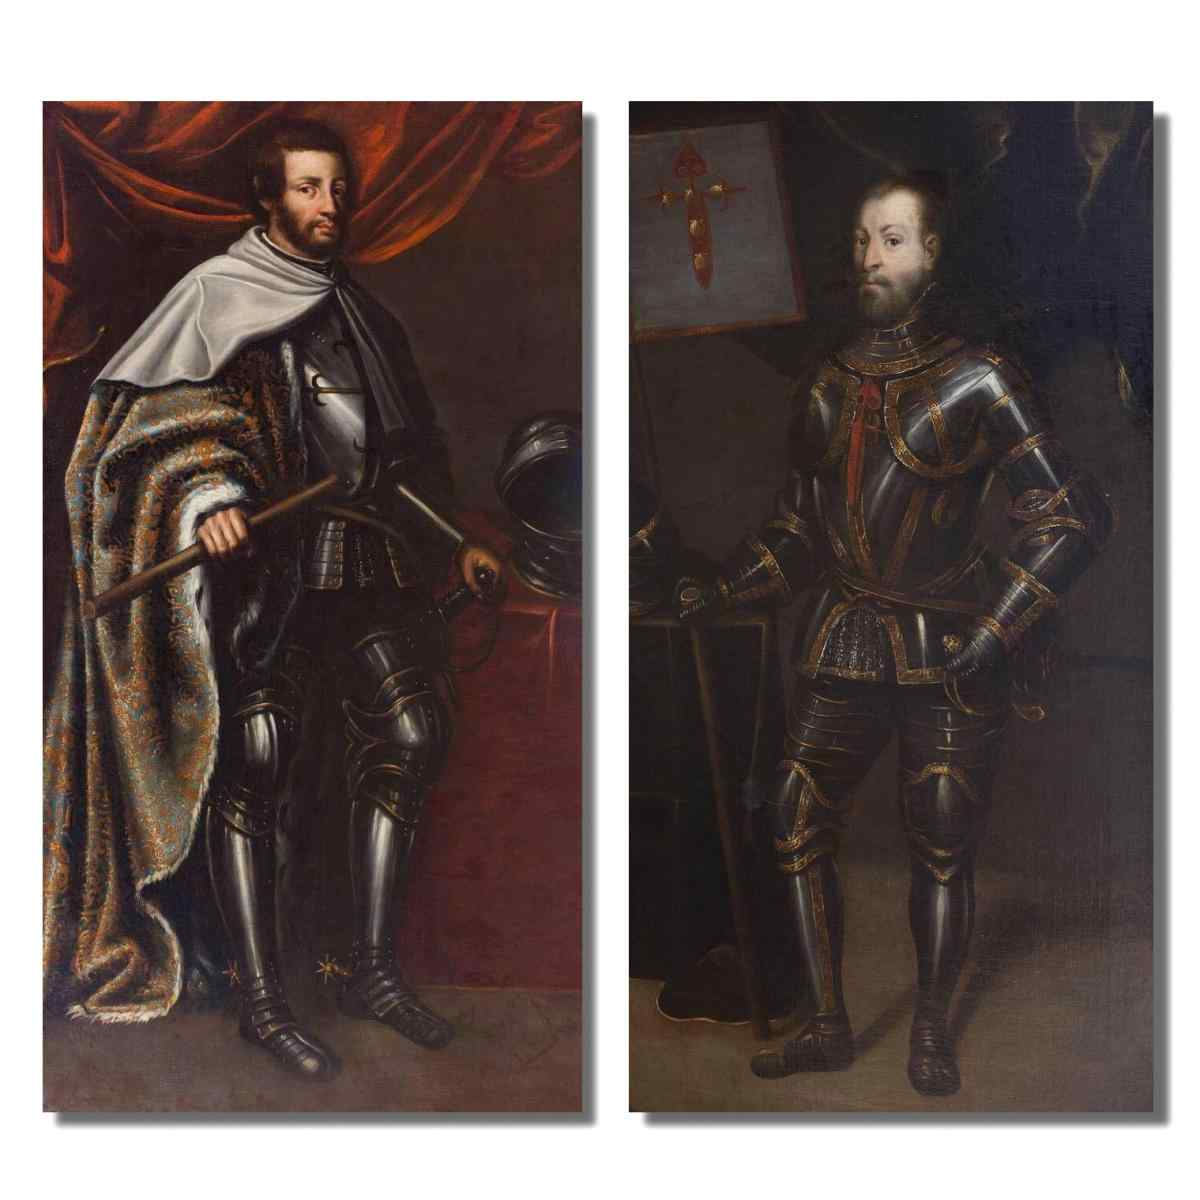 Pair of paintings from the 17th century